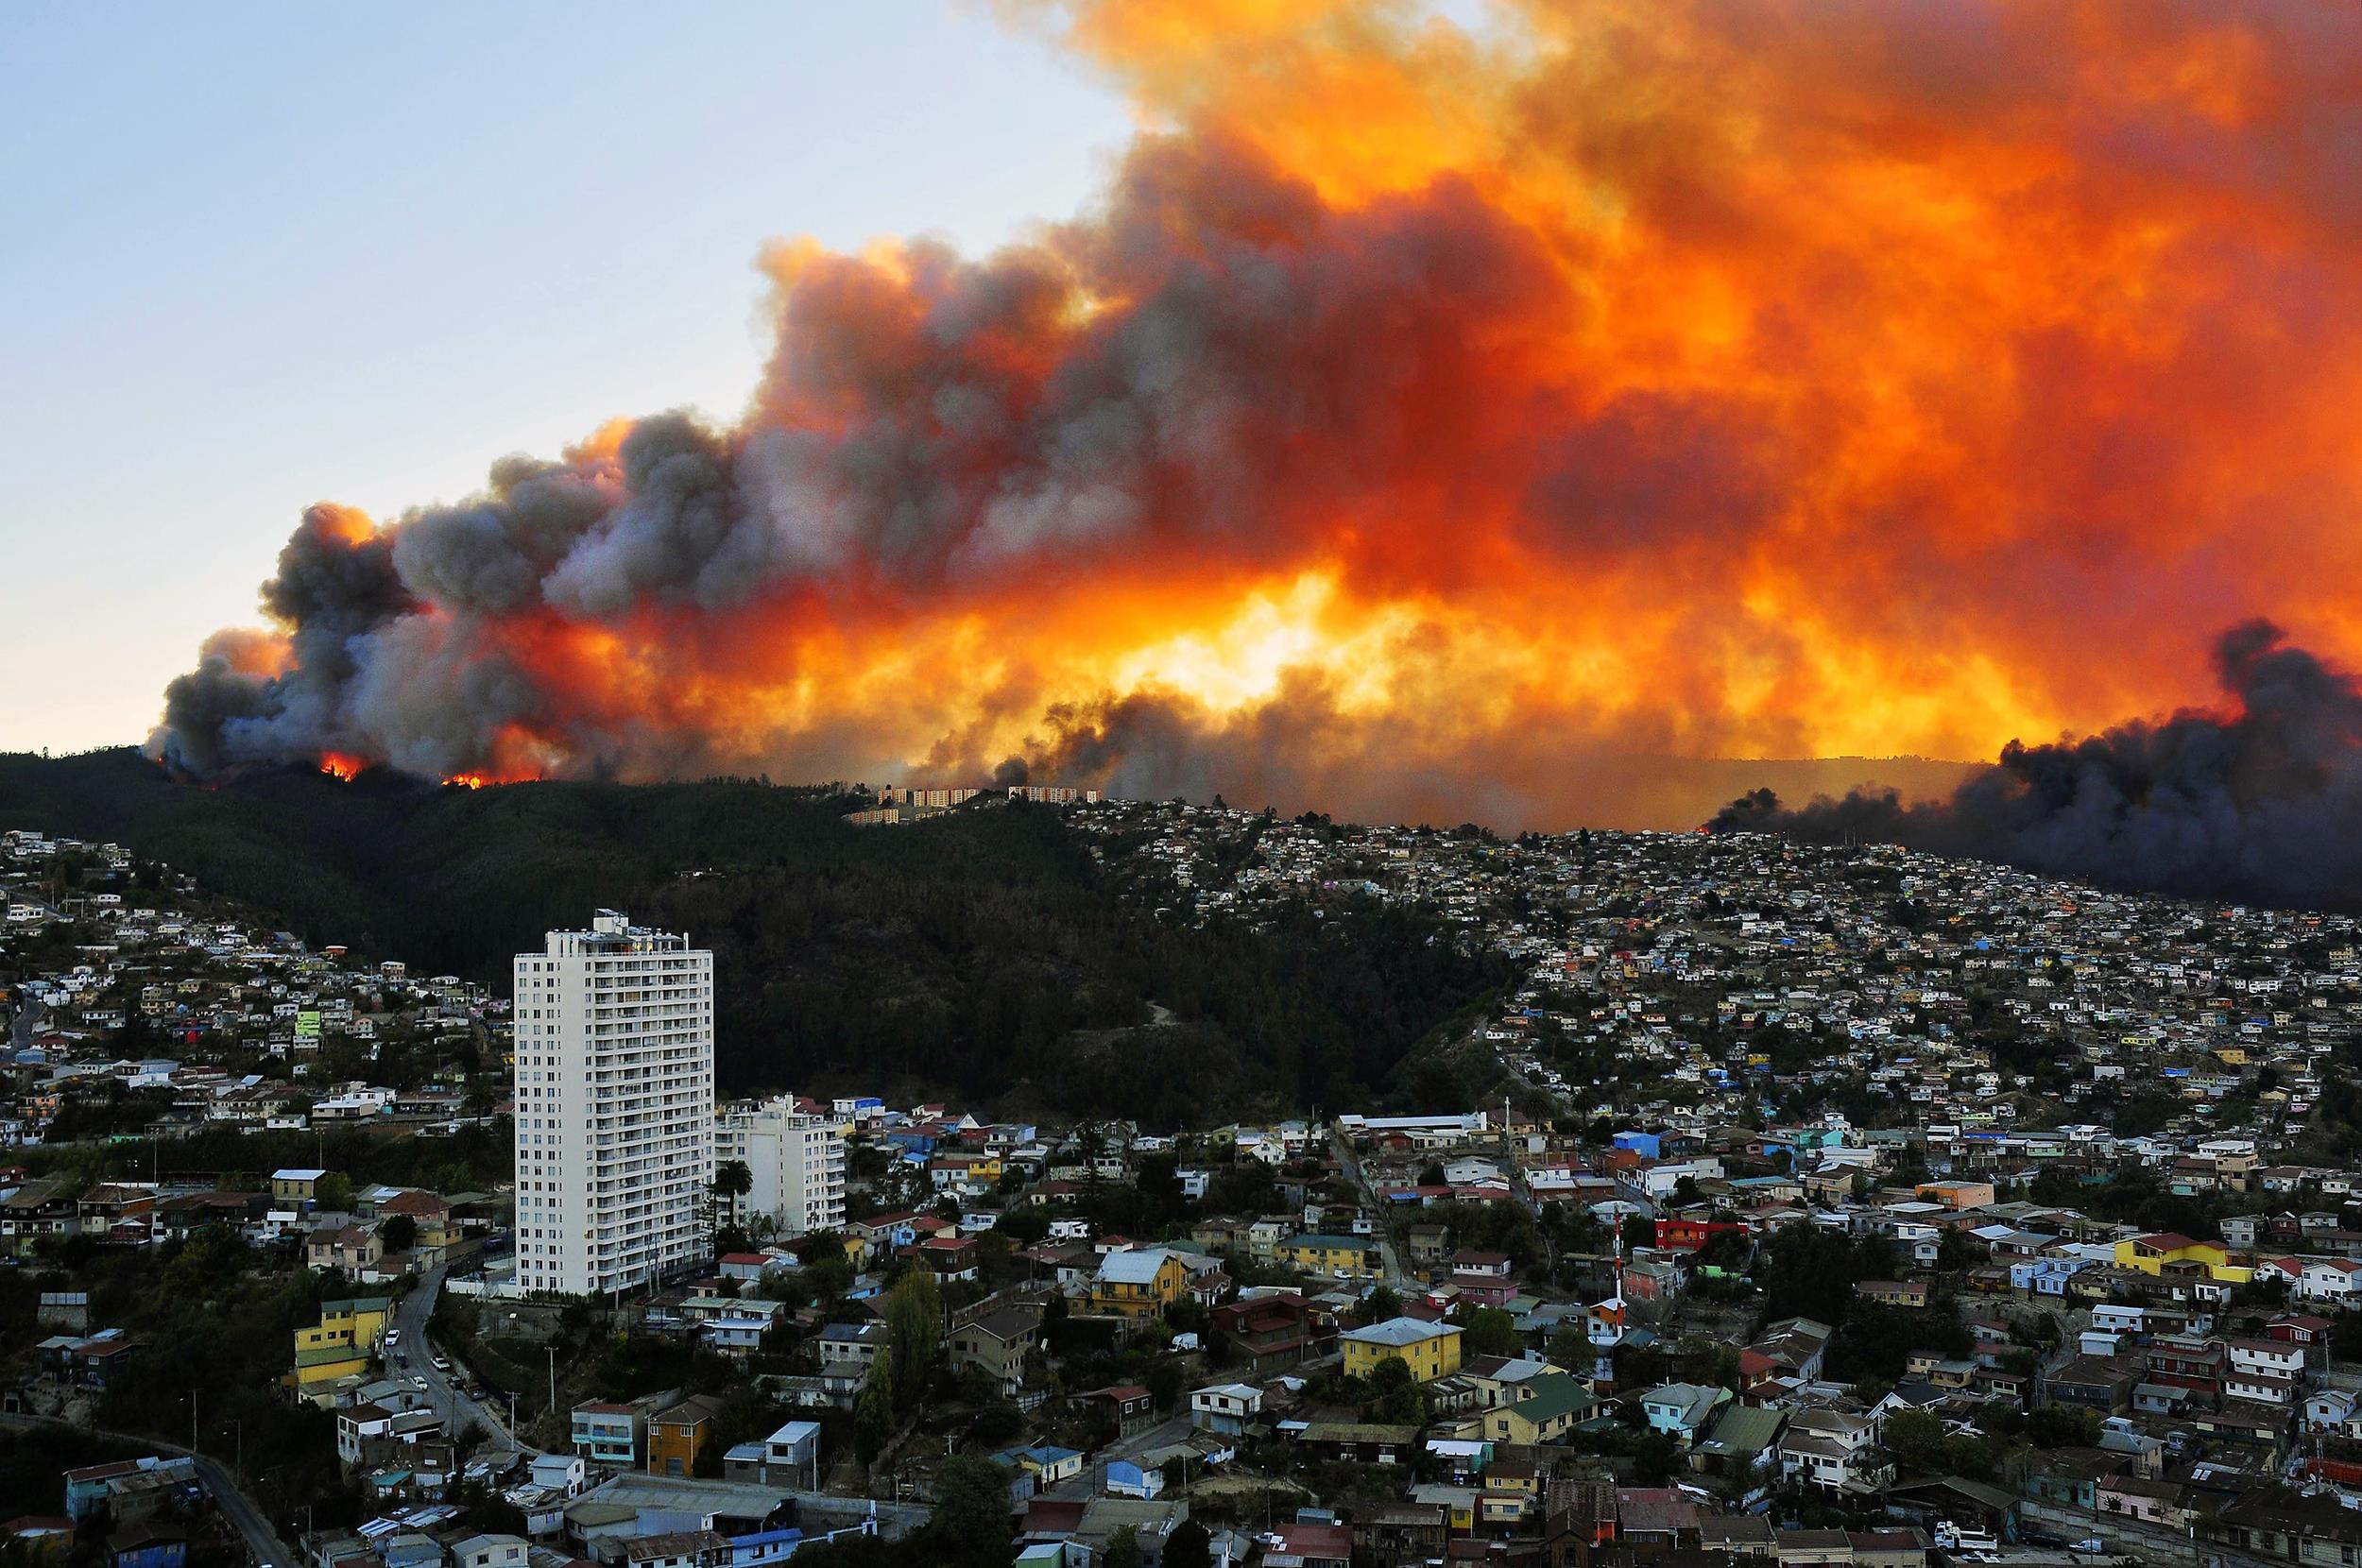 Image: Houses in flames during a fire near Santiago, Chile